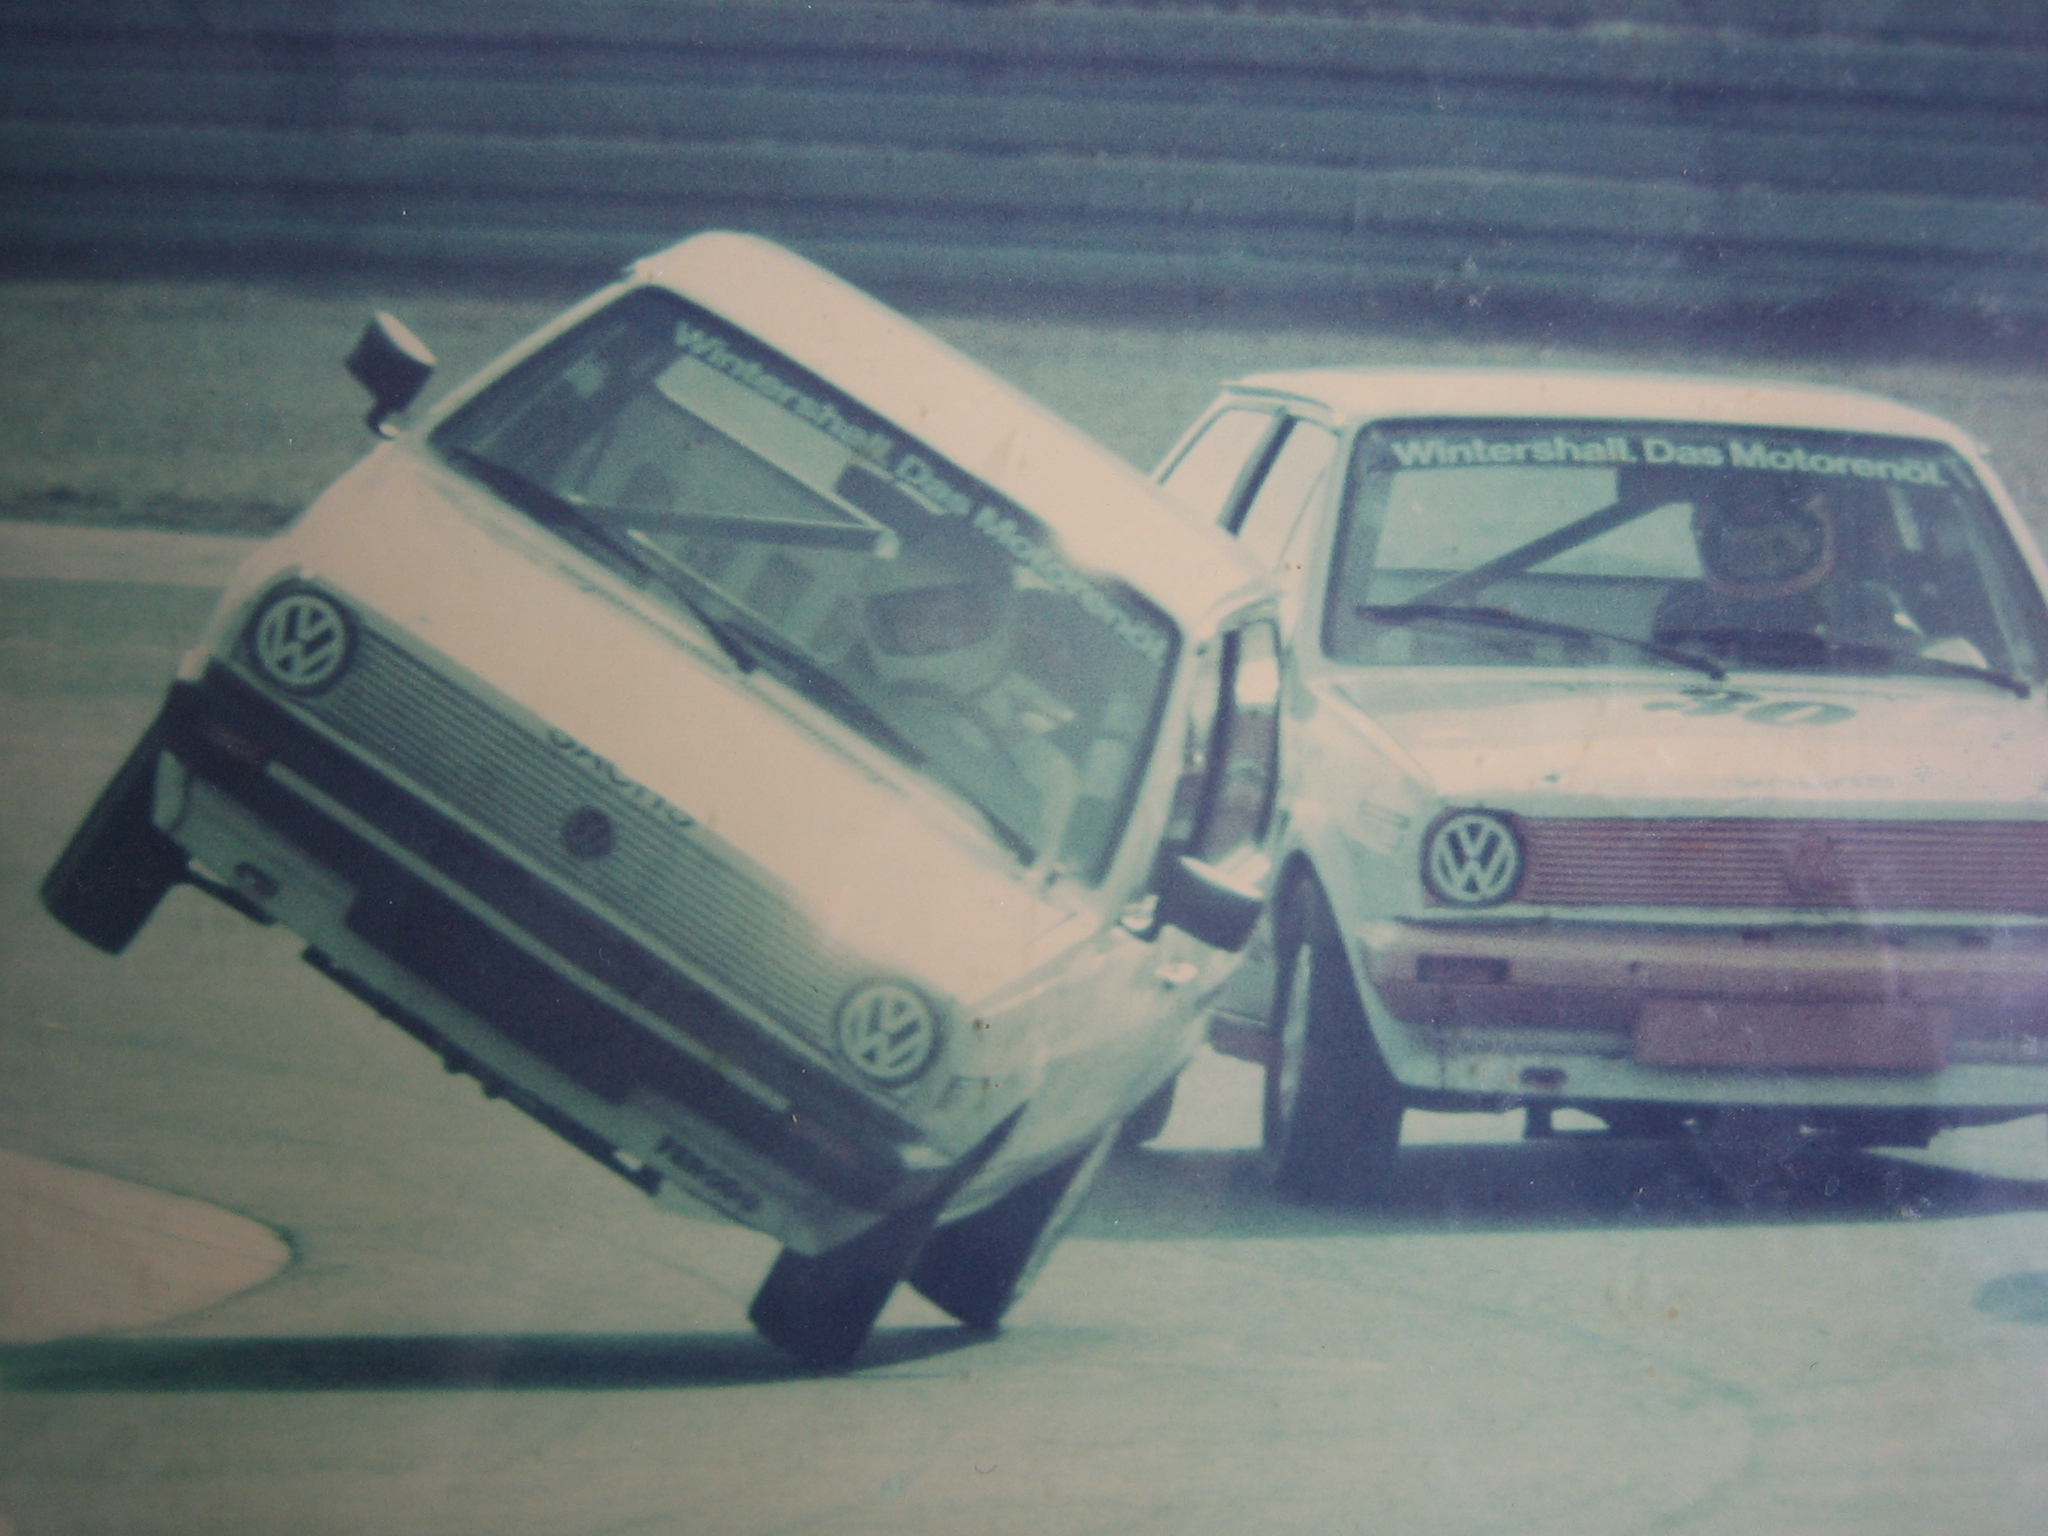 VW CUP Polo